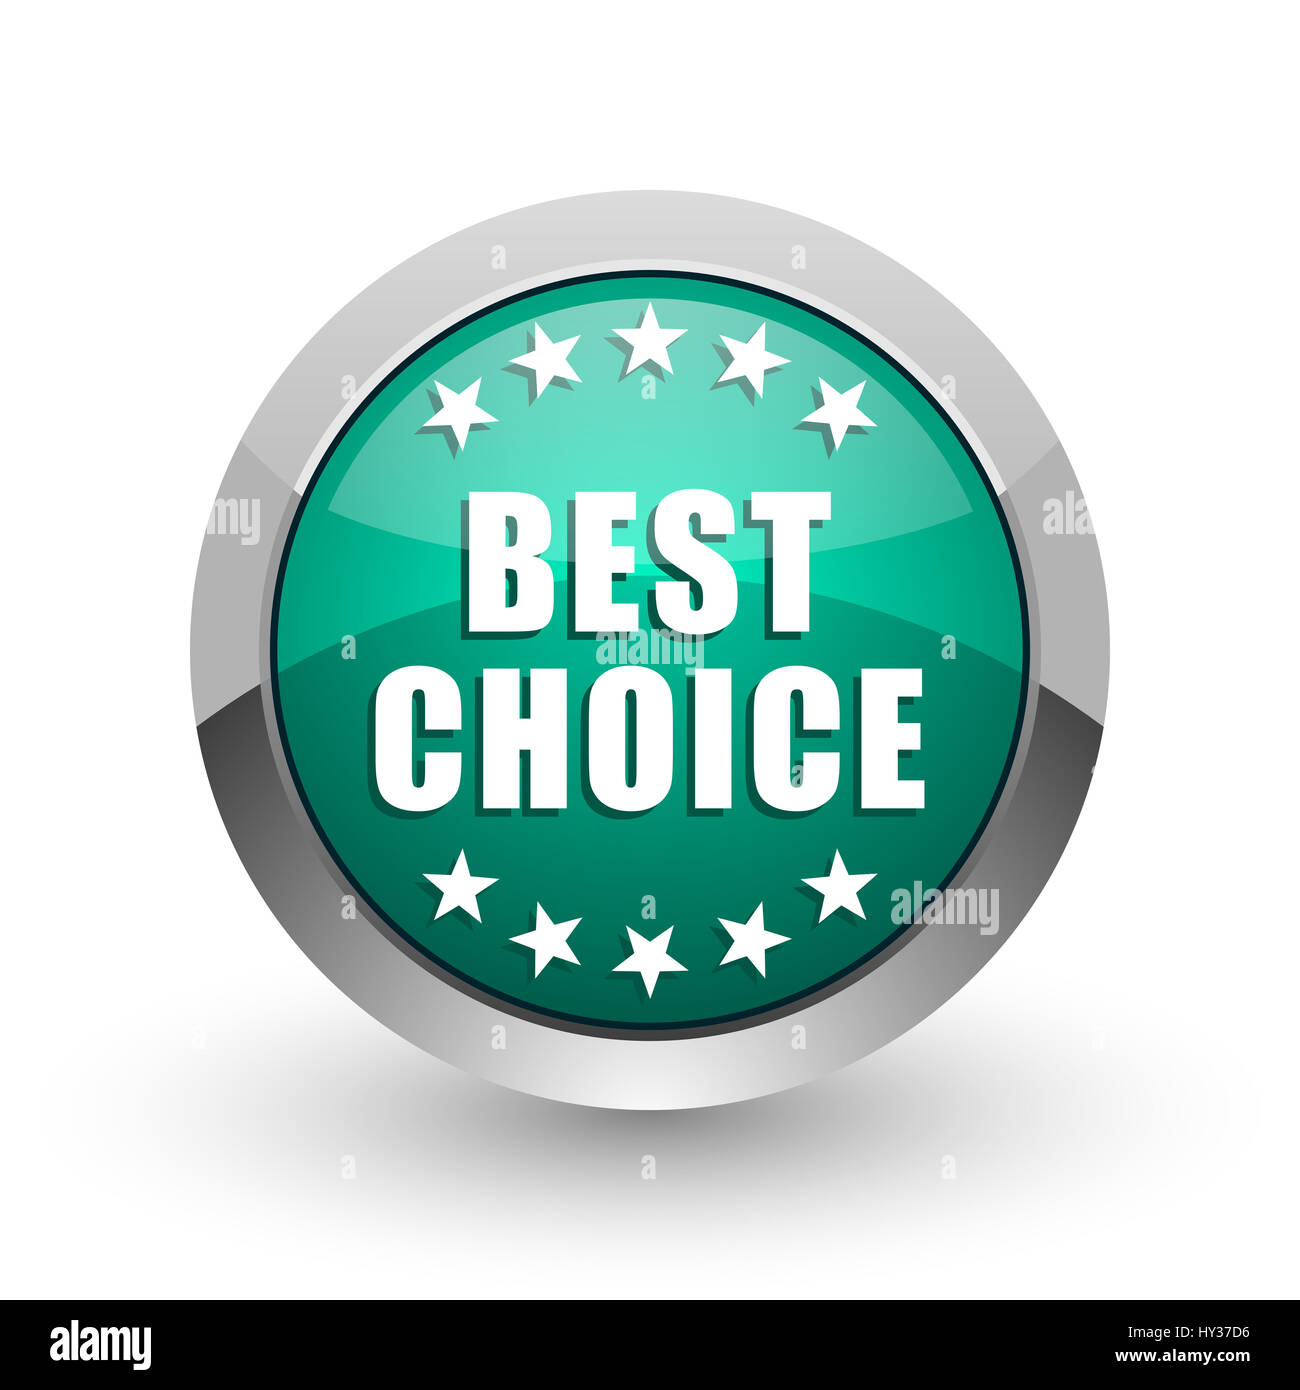 Best choice silver metallic chrome web design green round internet icon  with shadow on white background. 64d64d1bb